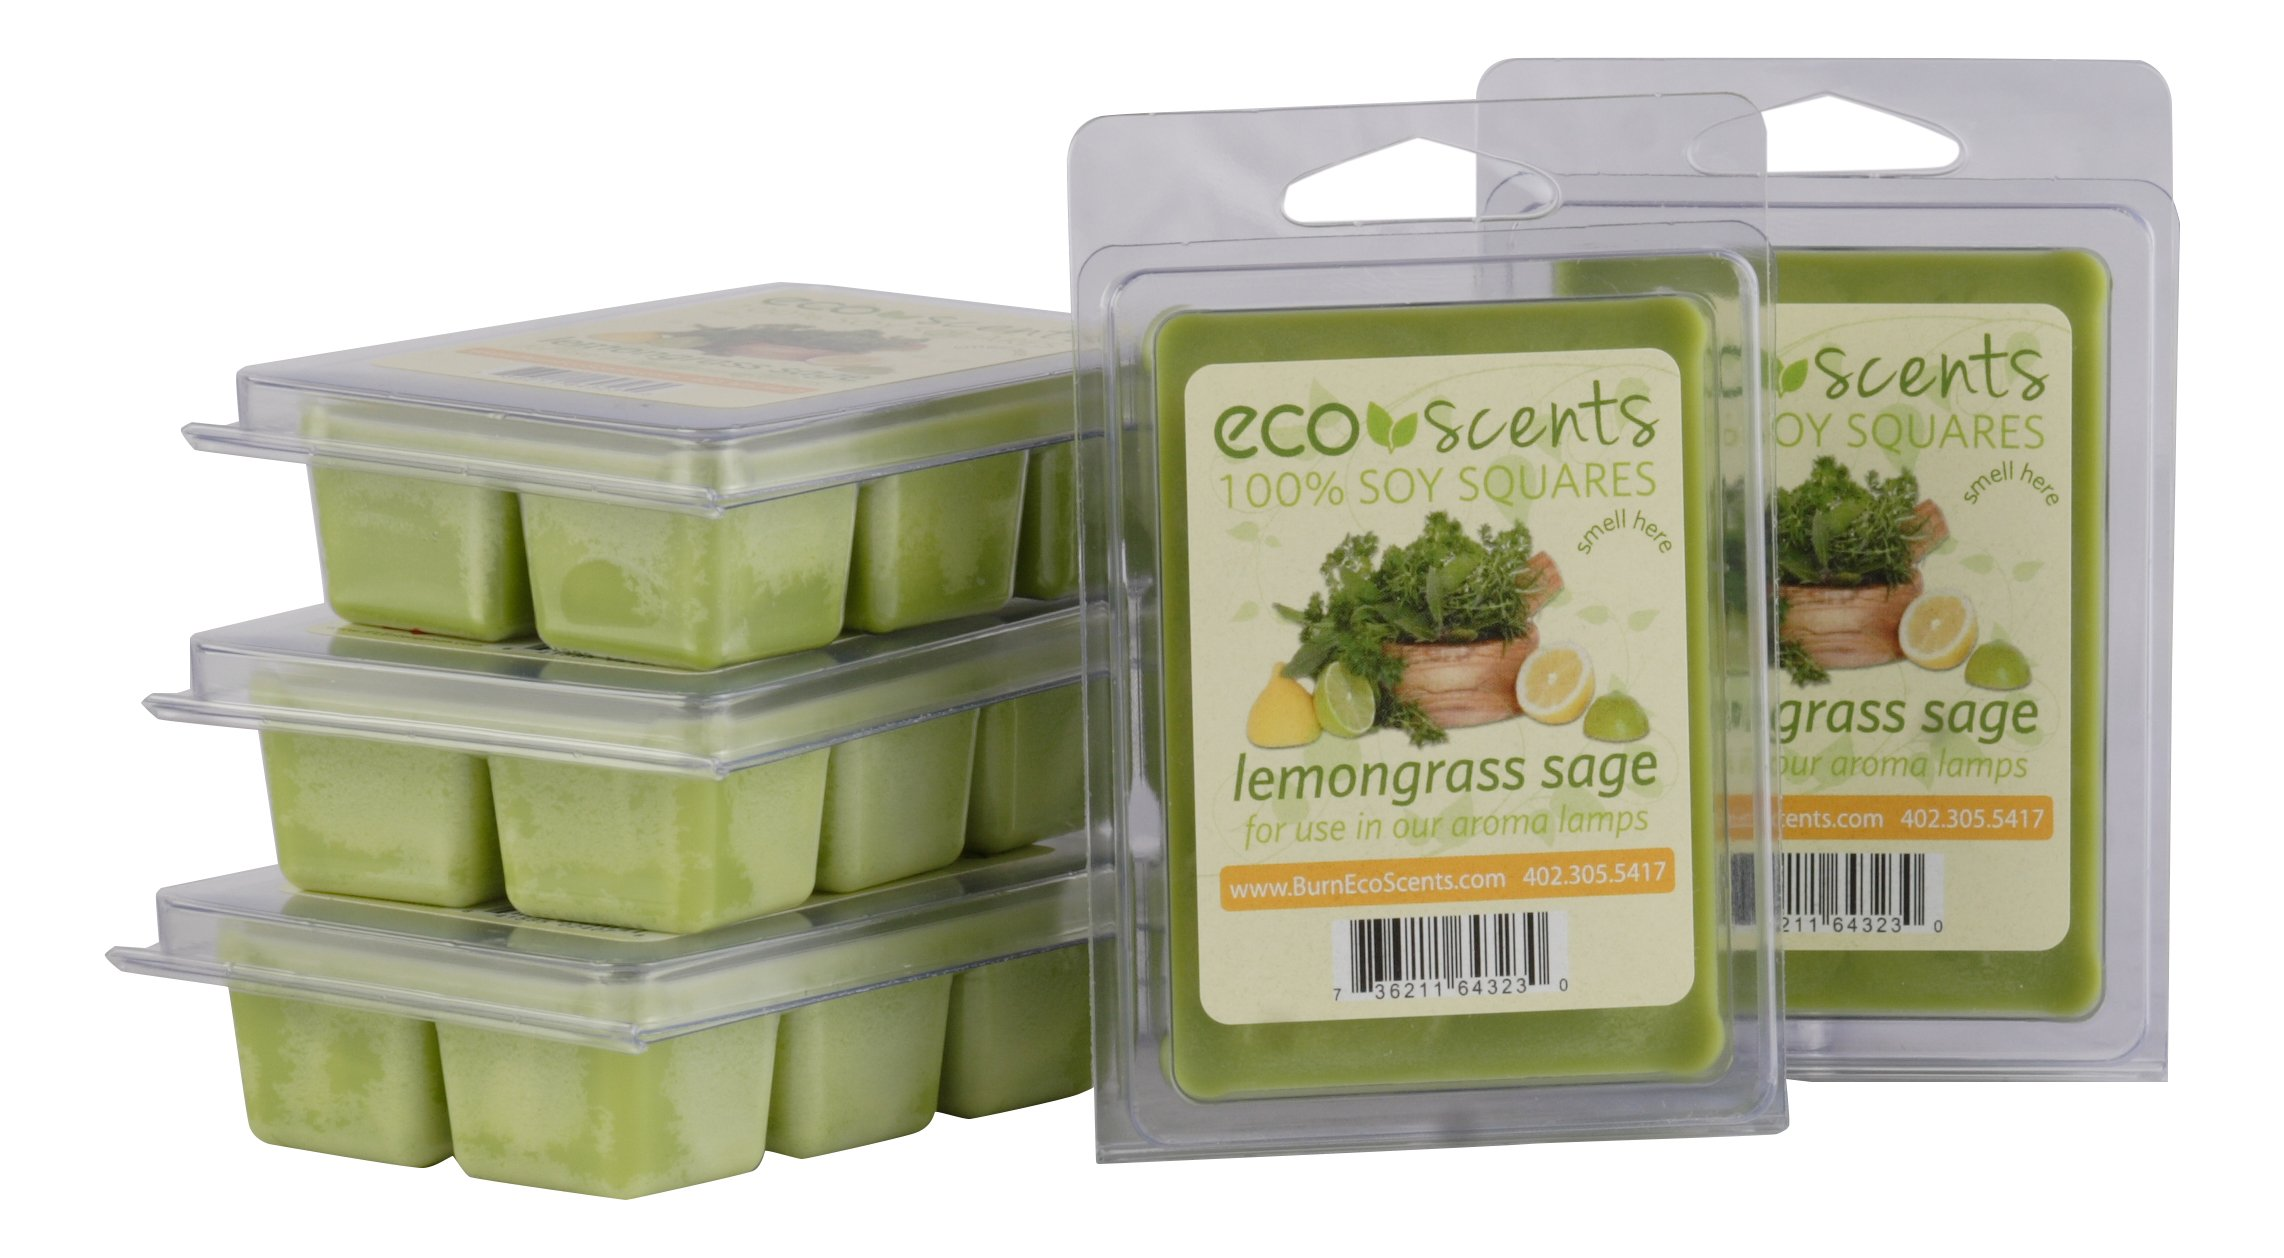 EcoScents Lemongrass Sage Wax Melts (5 Pack), Green